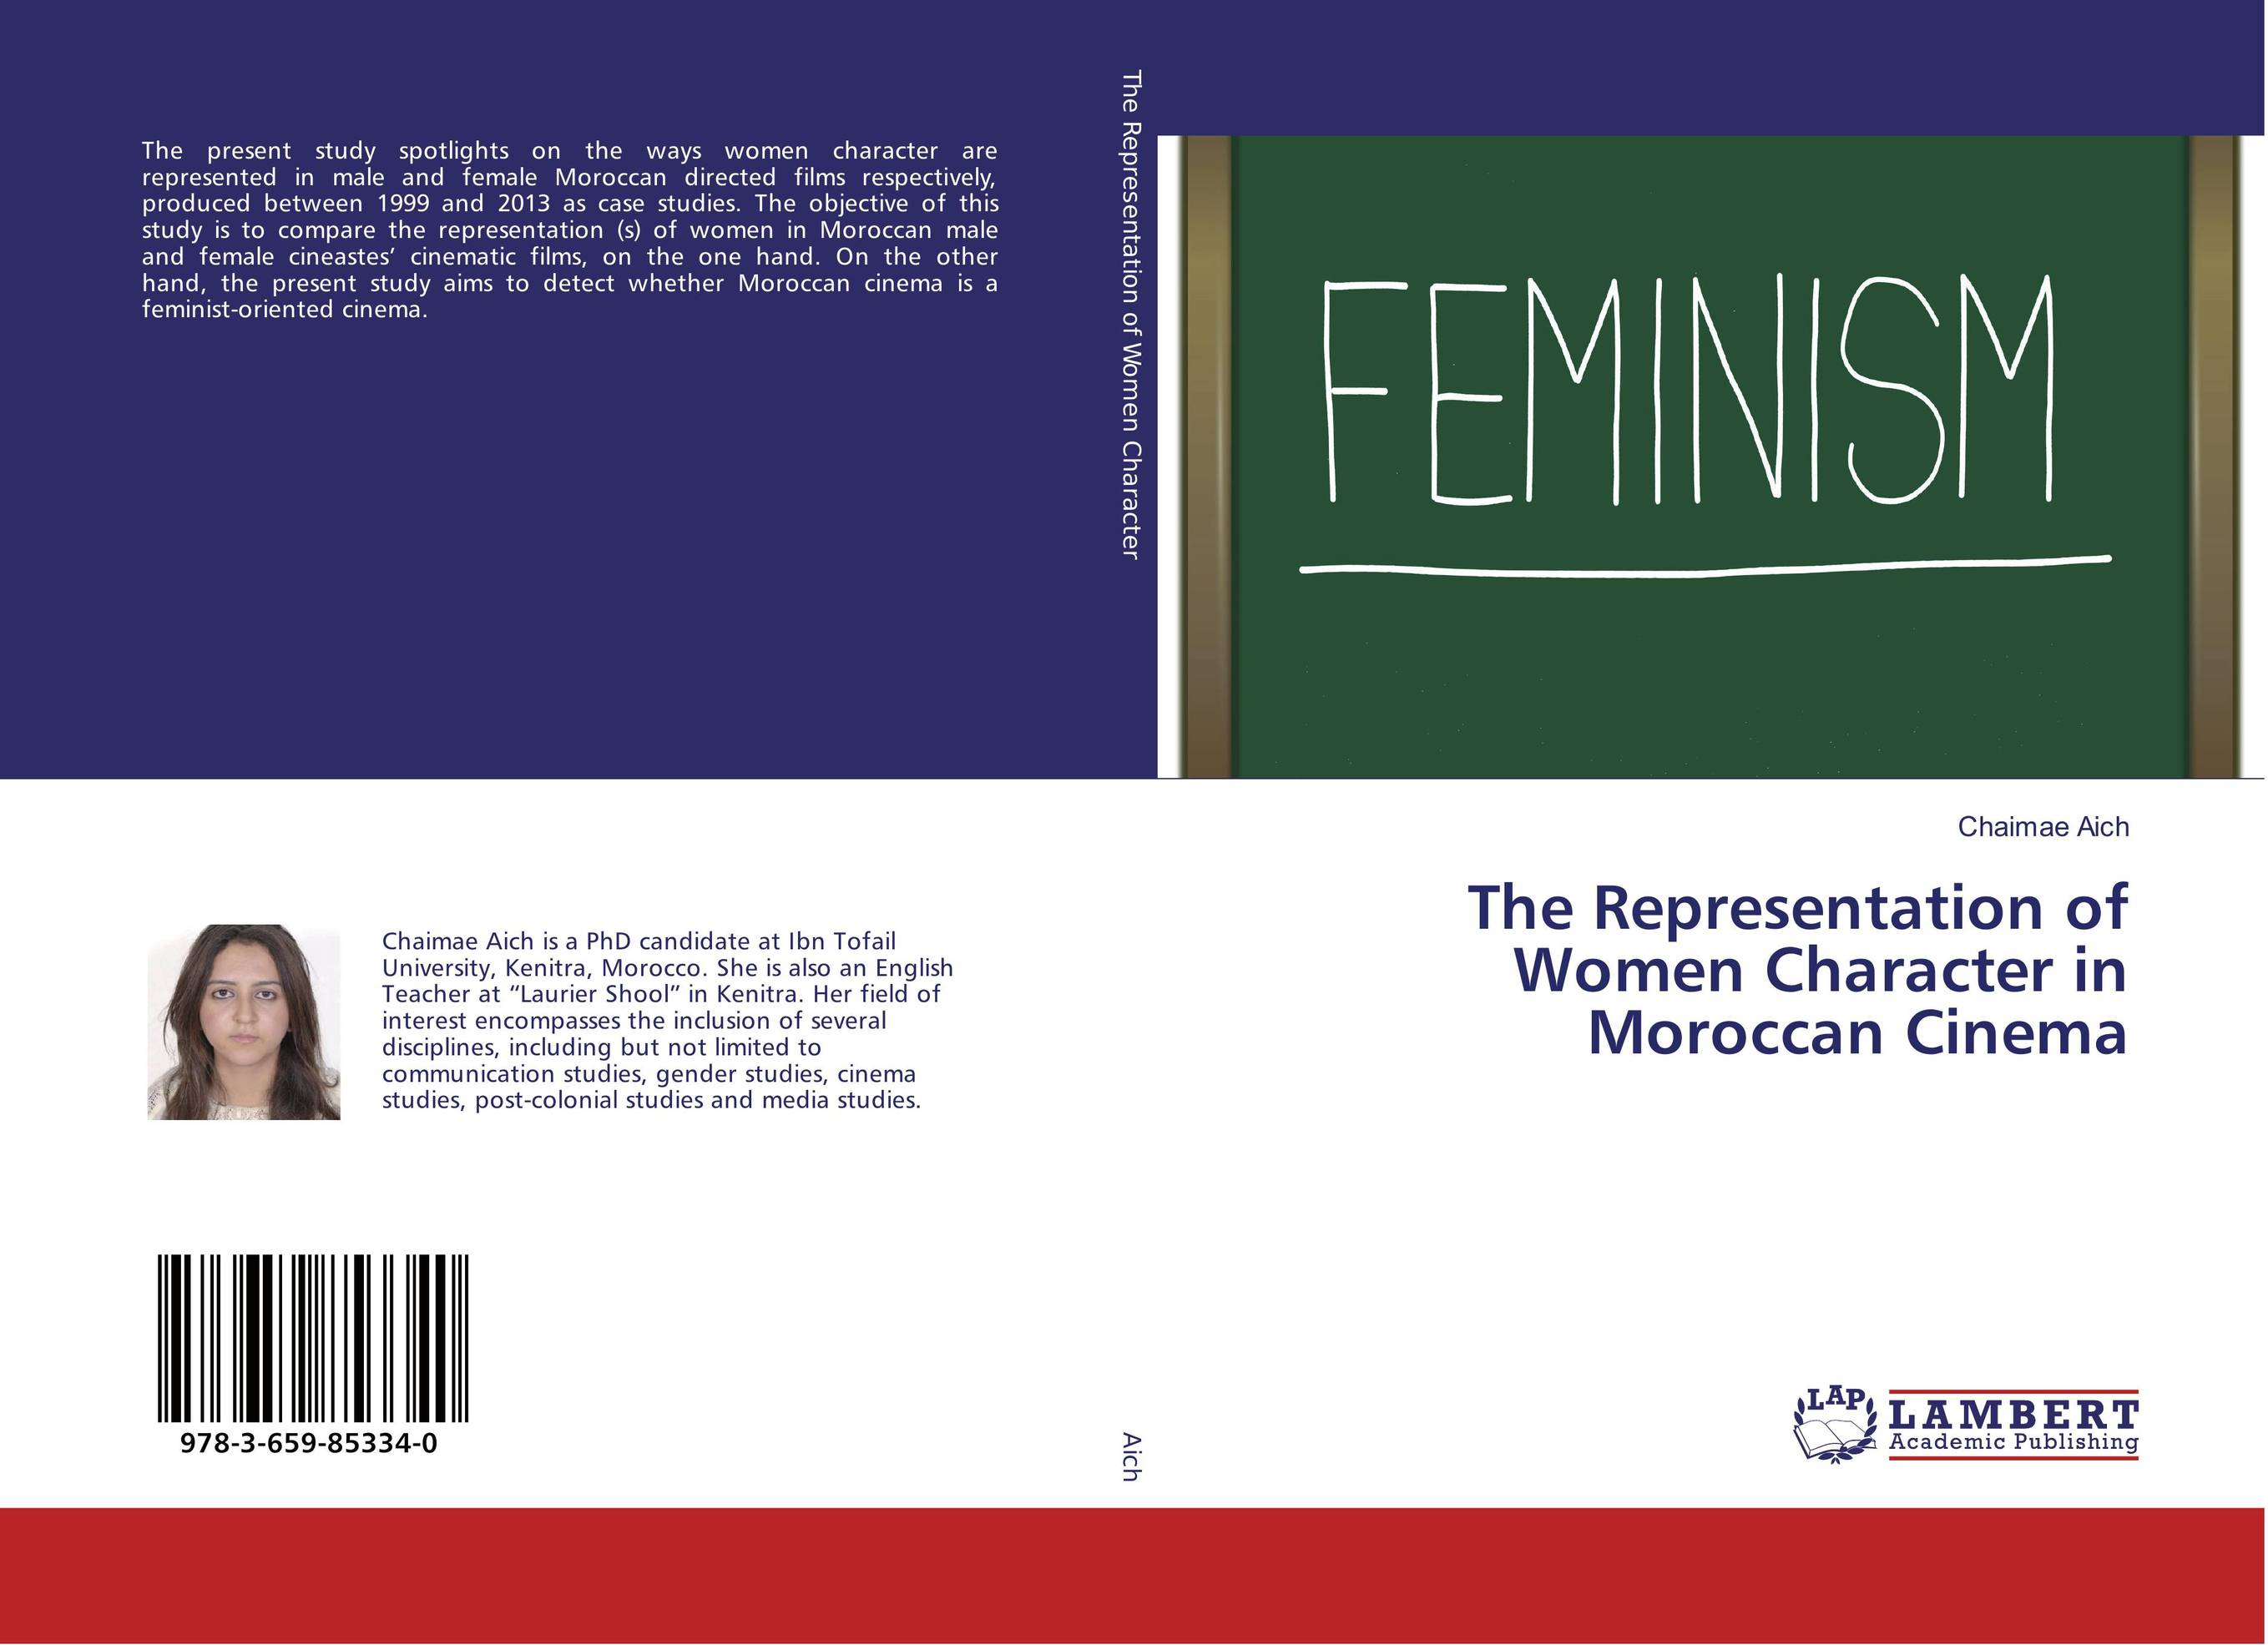 The Representation of Women Character in Moroccan Cinema